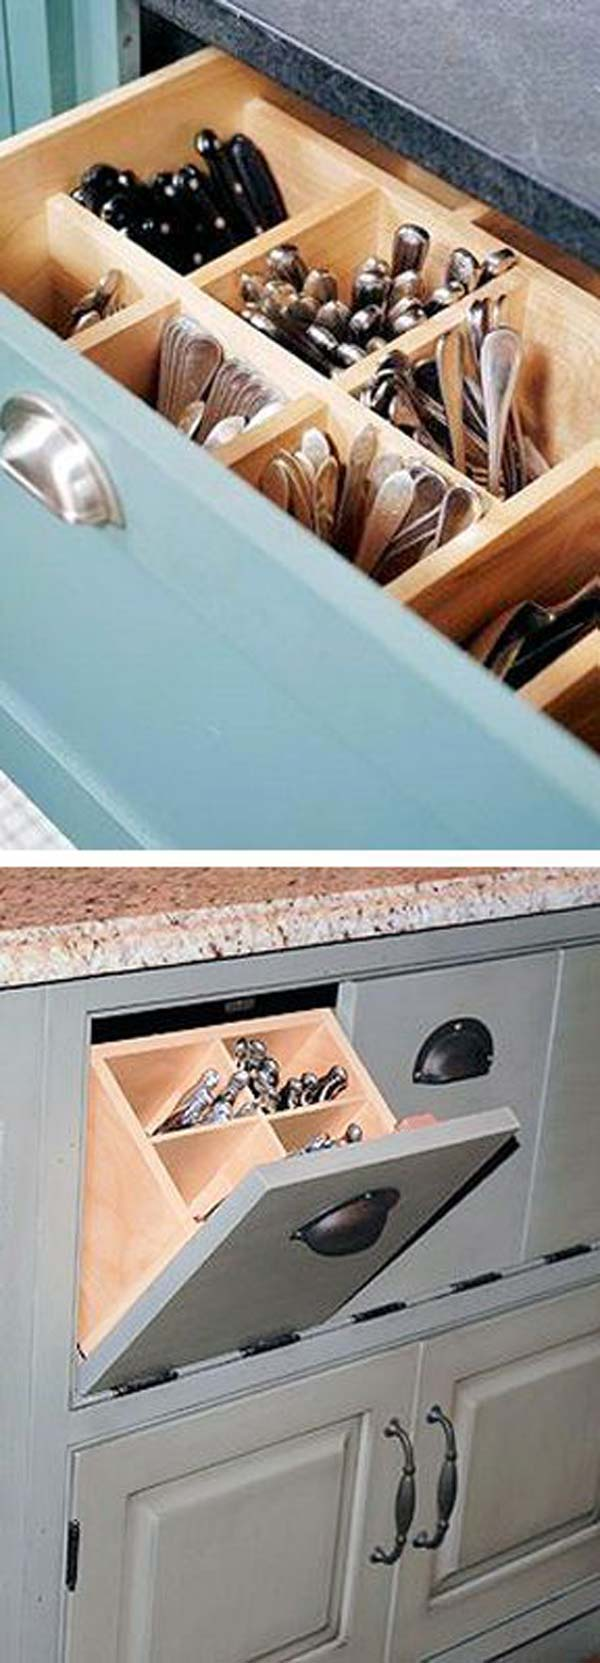 15 Easy and Clever Hacks to Organize Kitchen Cabinets - Amazing DIY ...